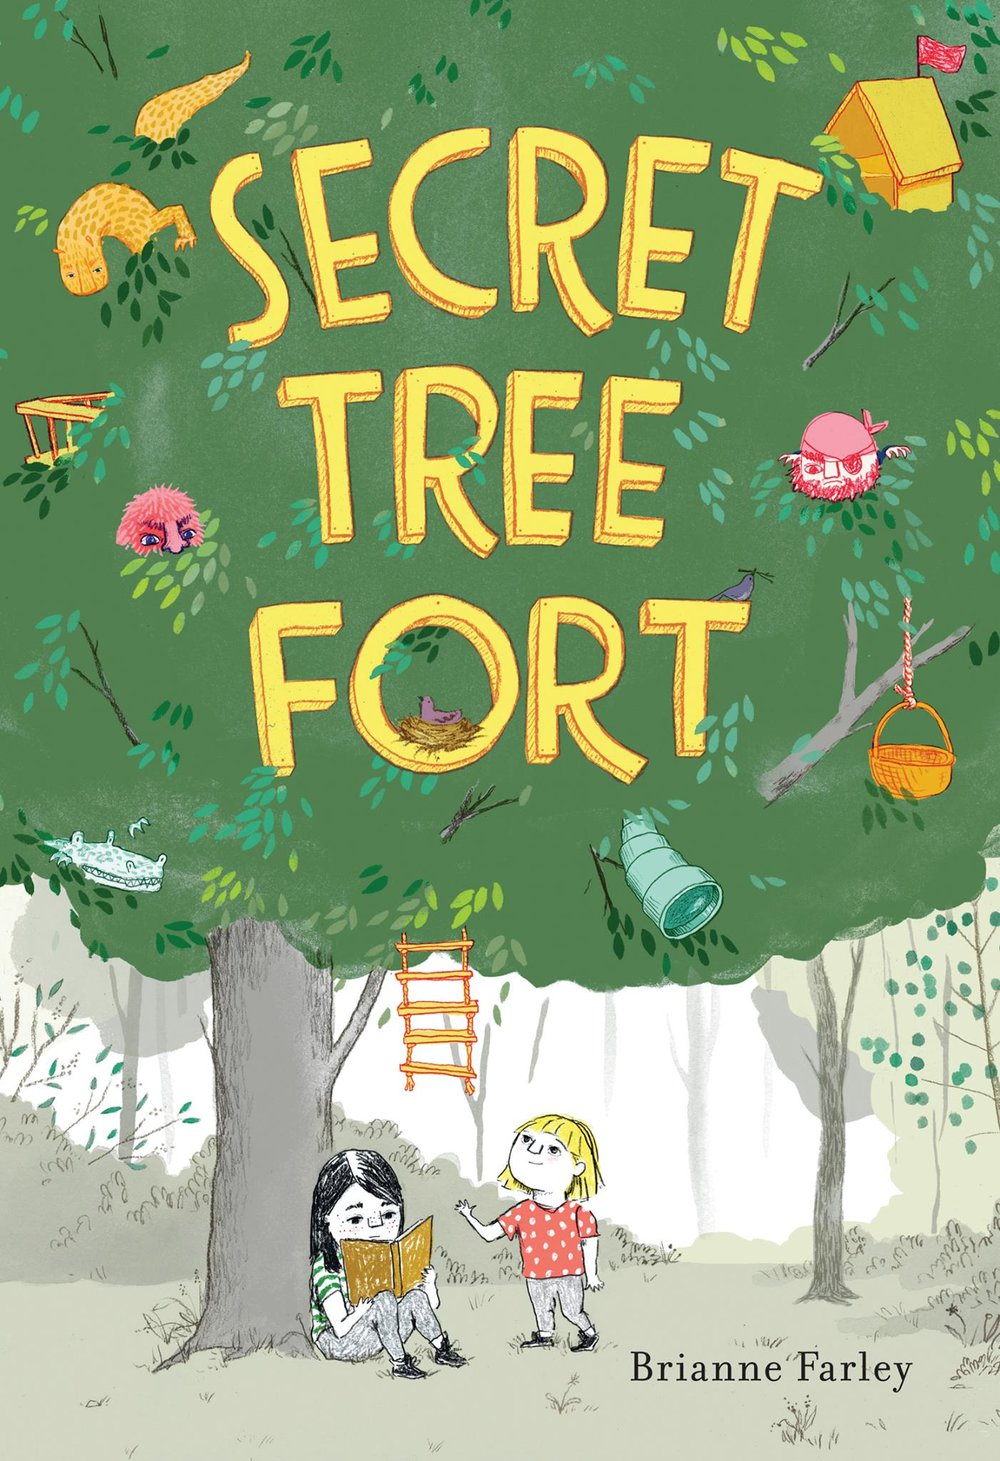 Farley, Brianne 2016_04 SECRET TREE FORT - PB - RLM PR.jpg